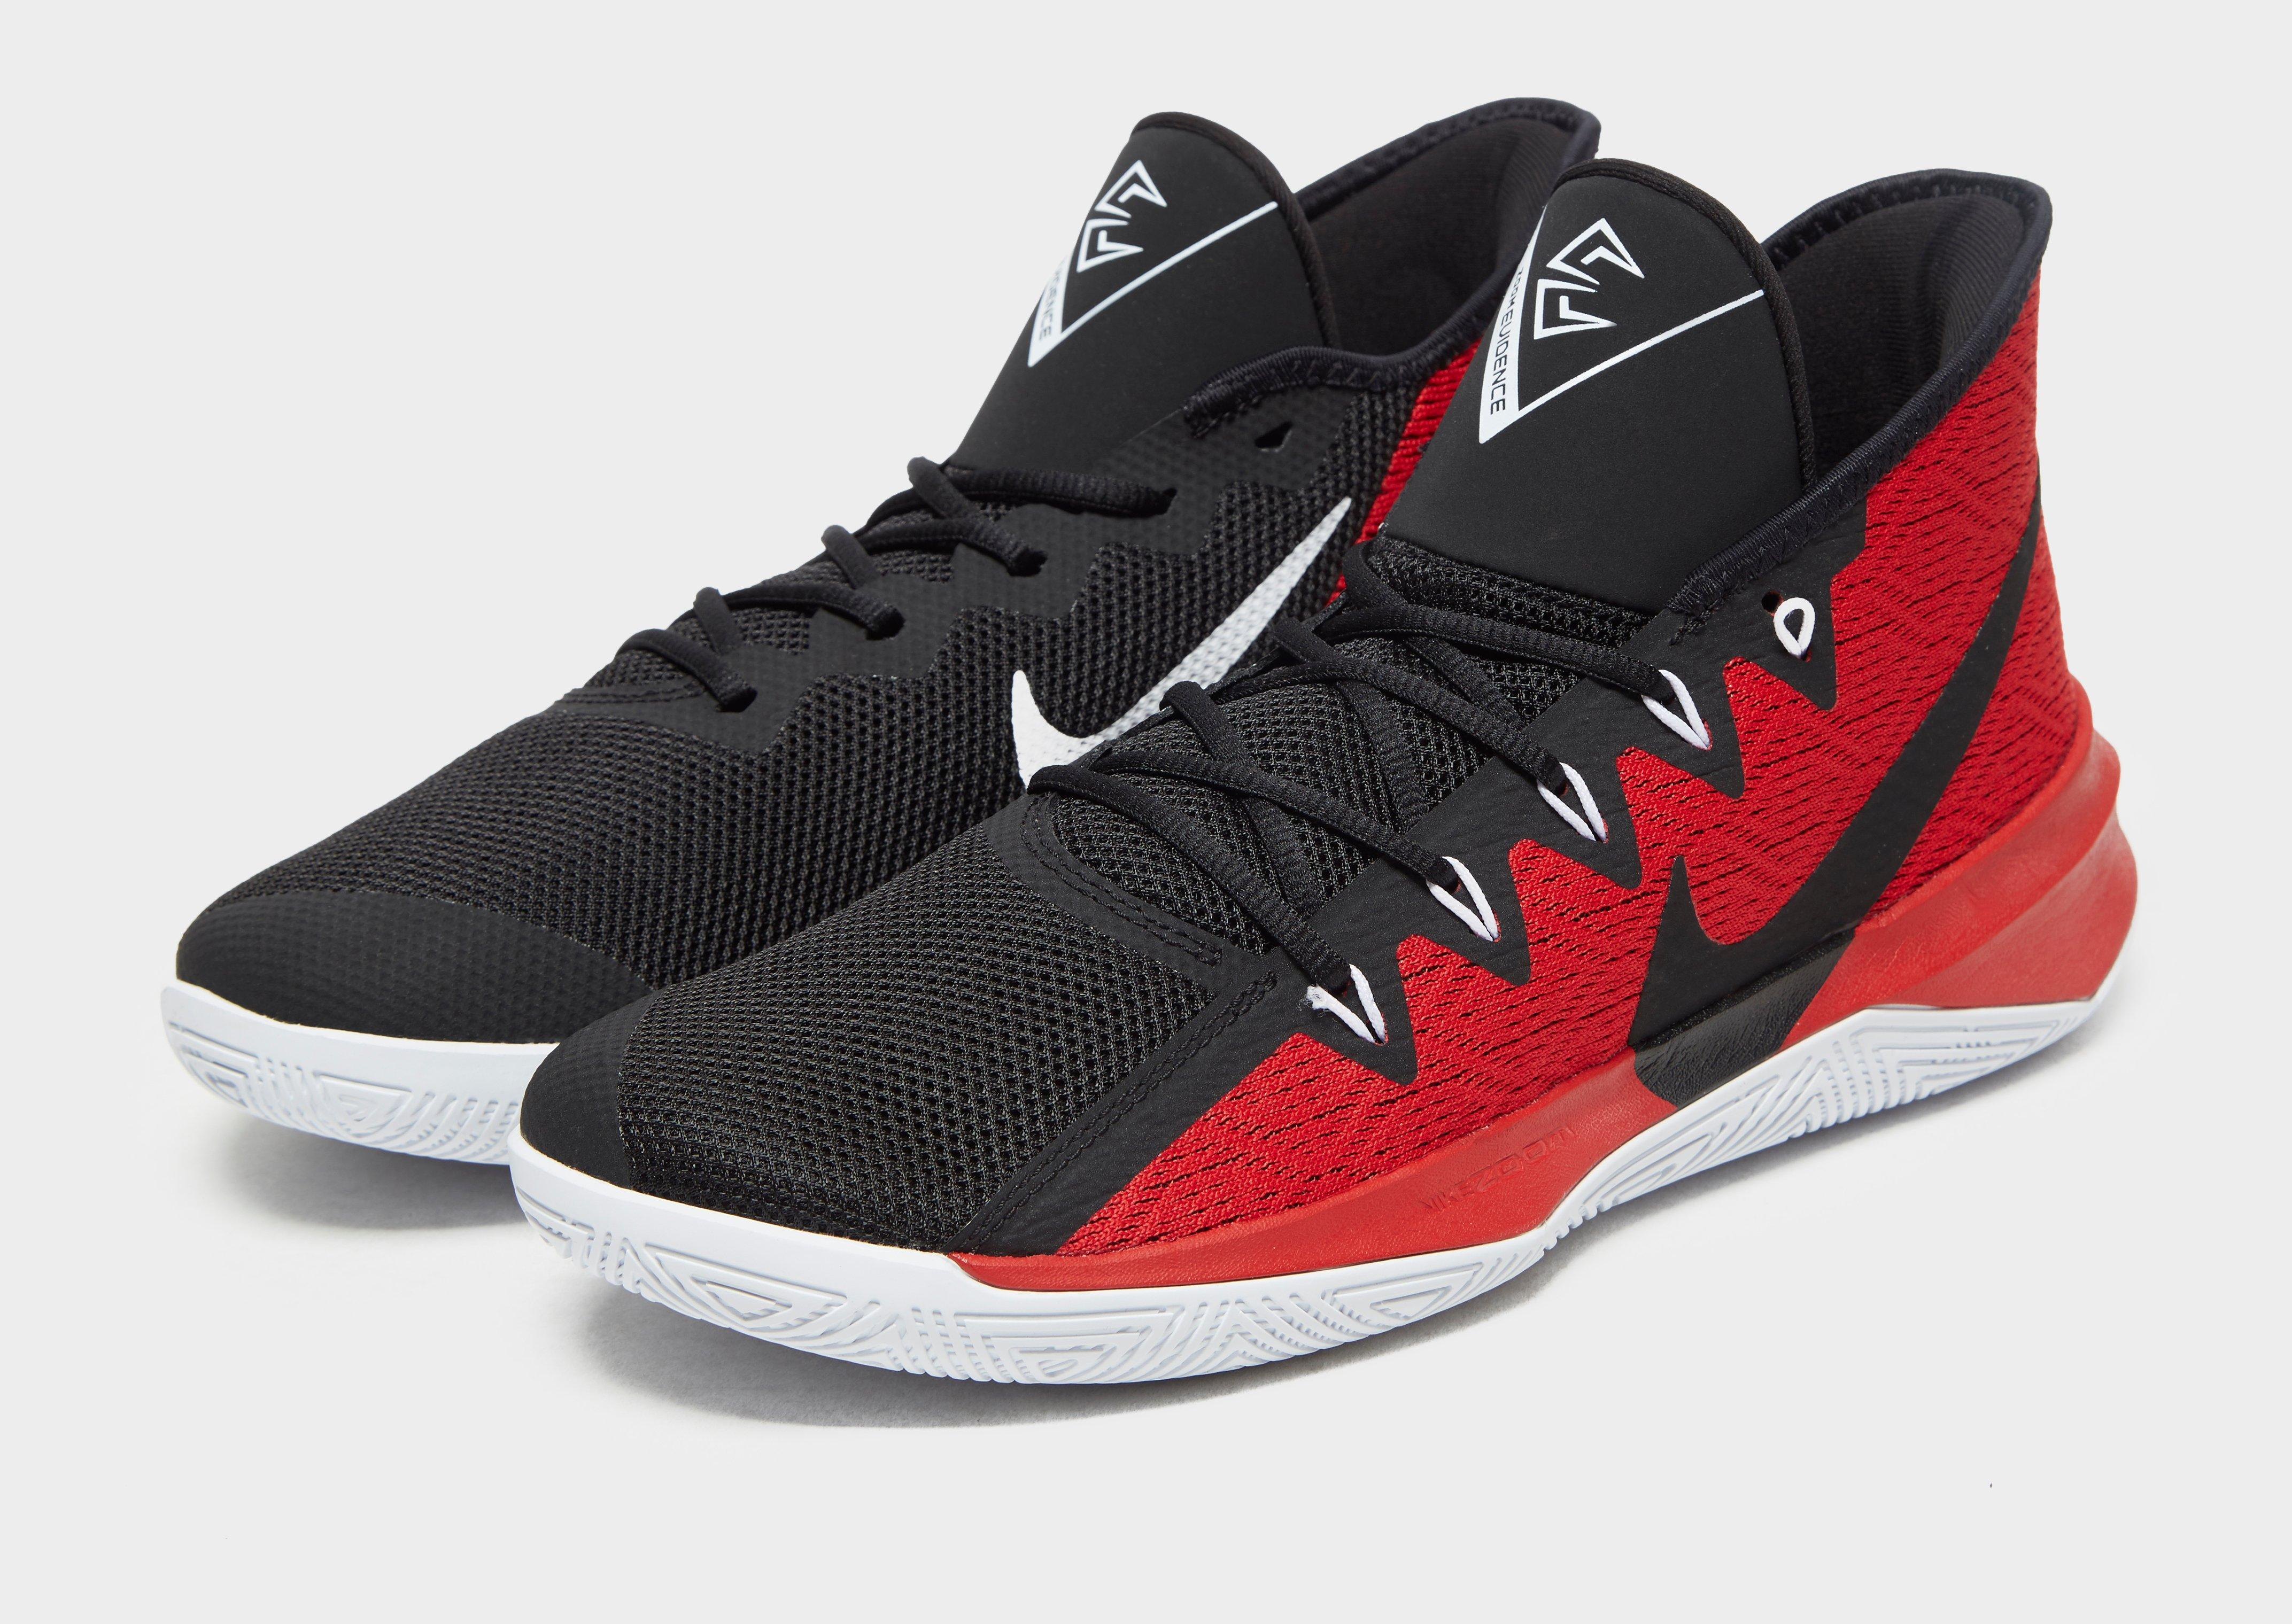 7f5f8a06ad88 Nike - Red Air Zoom Evidence Iii for Men - Lyst. View fullscreen